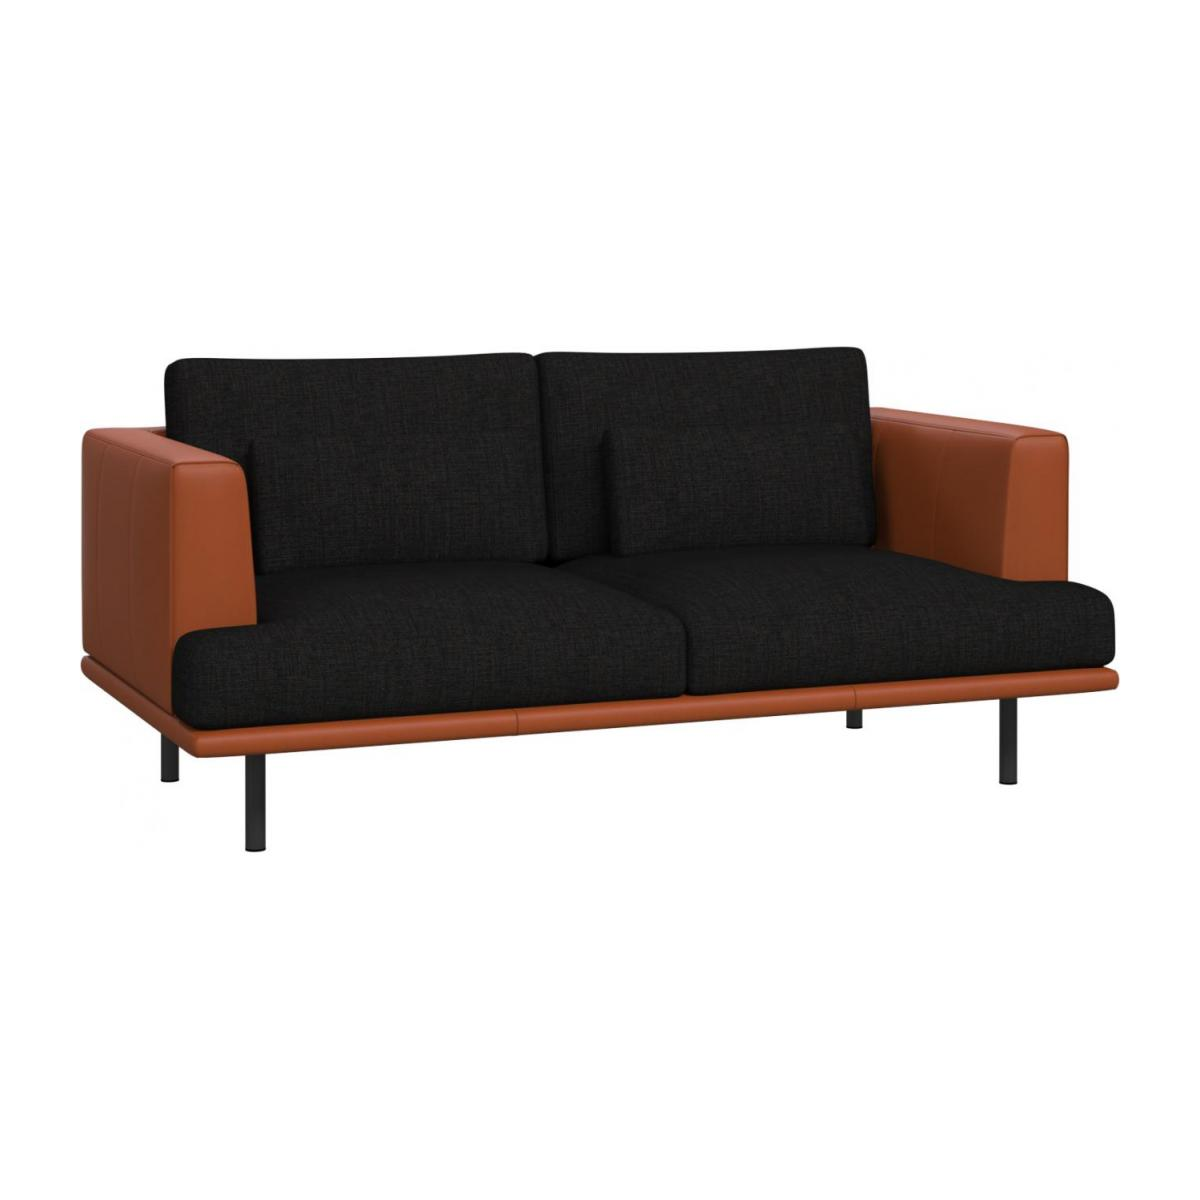 2 seater sofa in Ancio fabric, nero with base and armrests in brown leather n°1